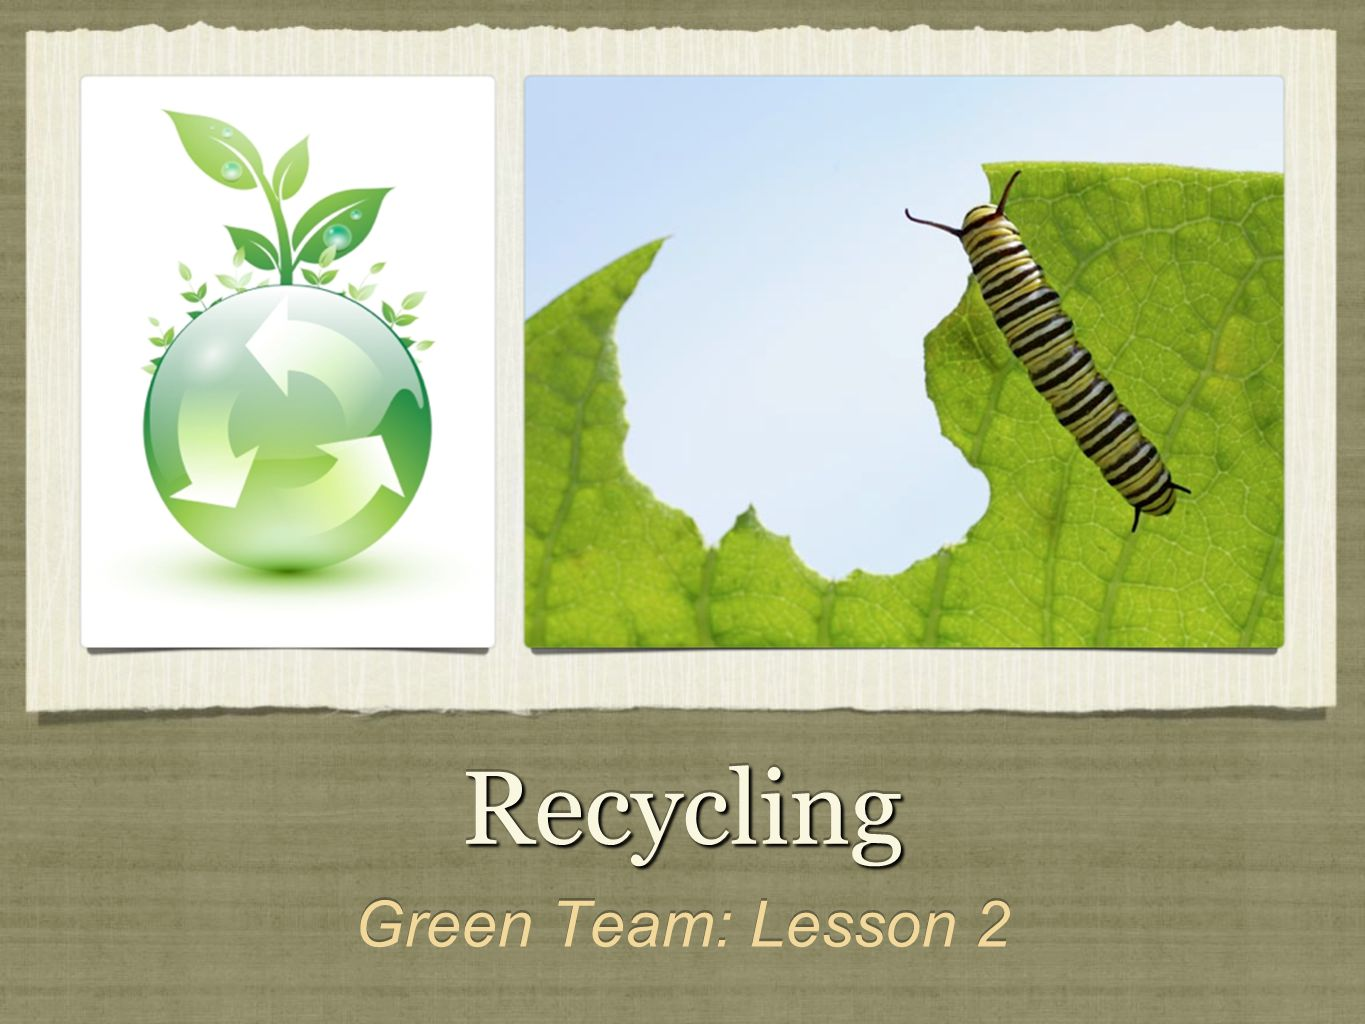 RecyclingRecycling Green Team: Lesson 2